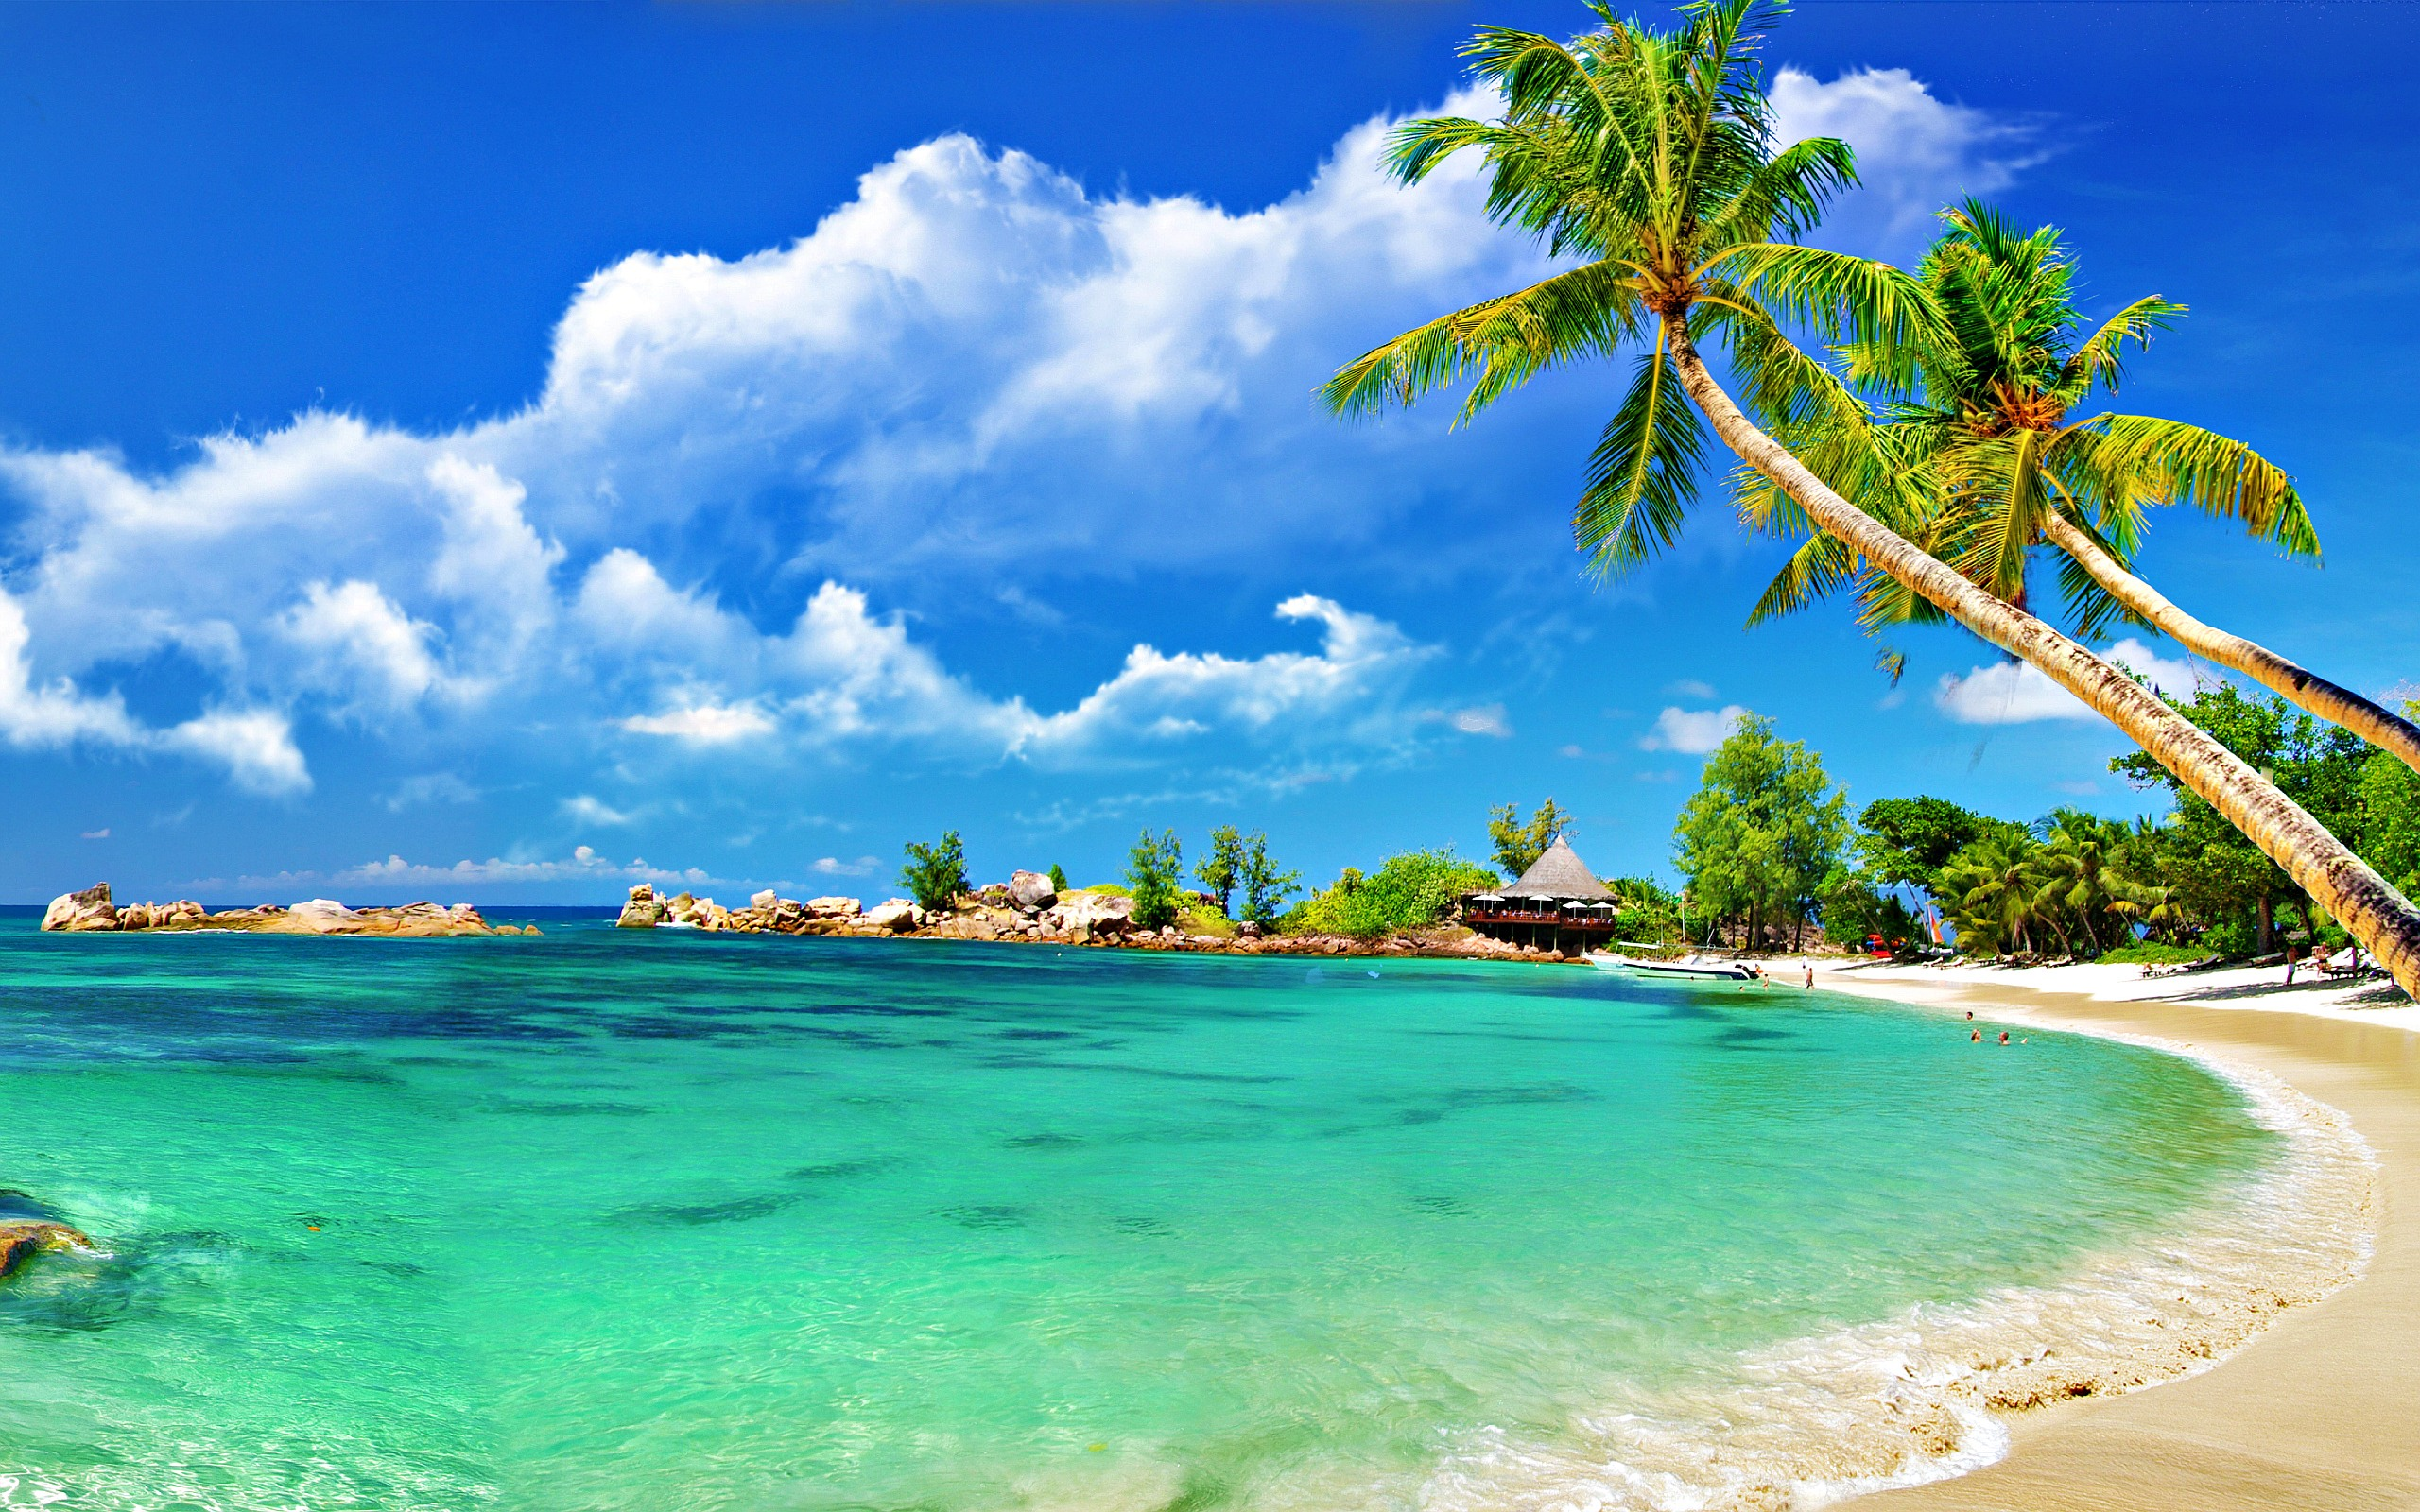 Beach Wallpaper Desktop 2560x1600